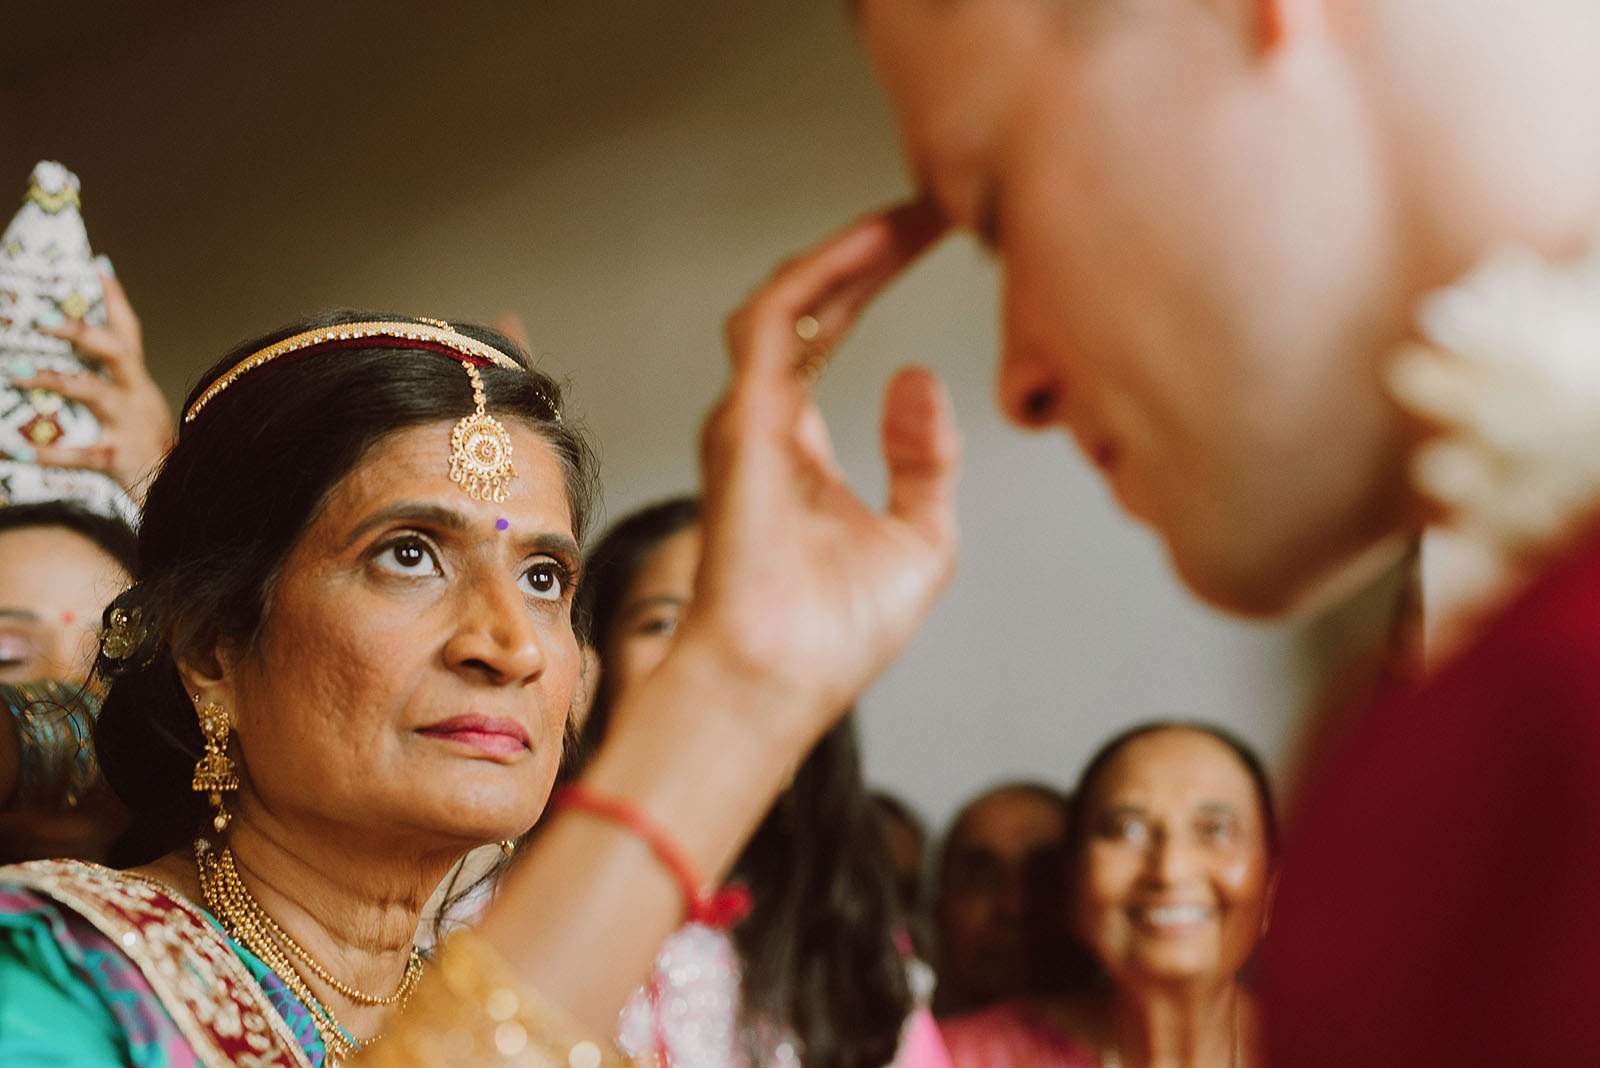 traditional hindu wedding ritual with the groom and bride's mother - portland wedding photography